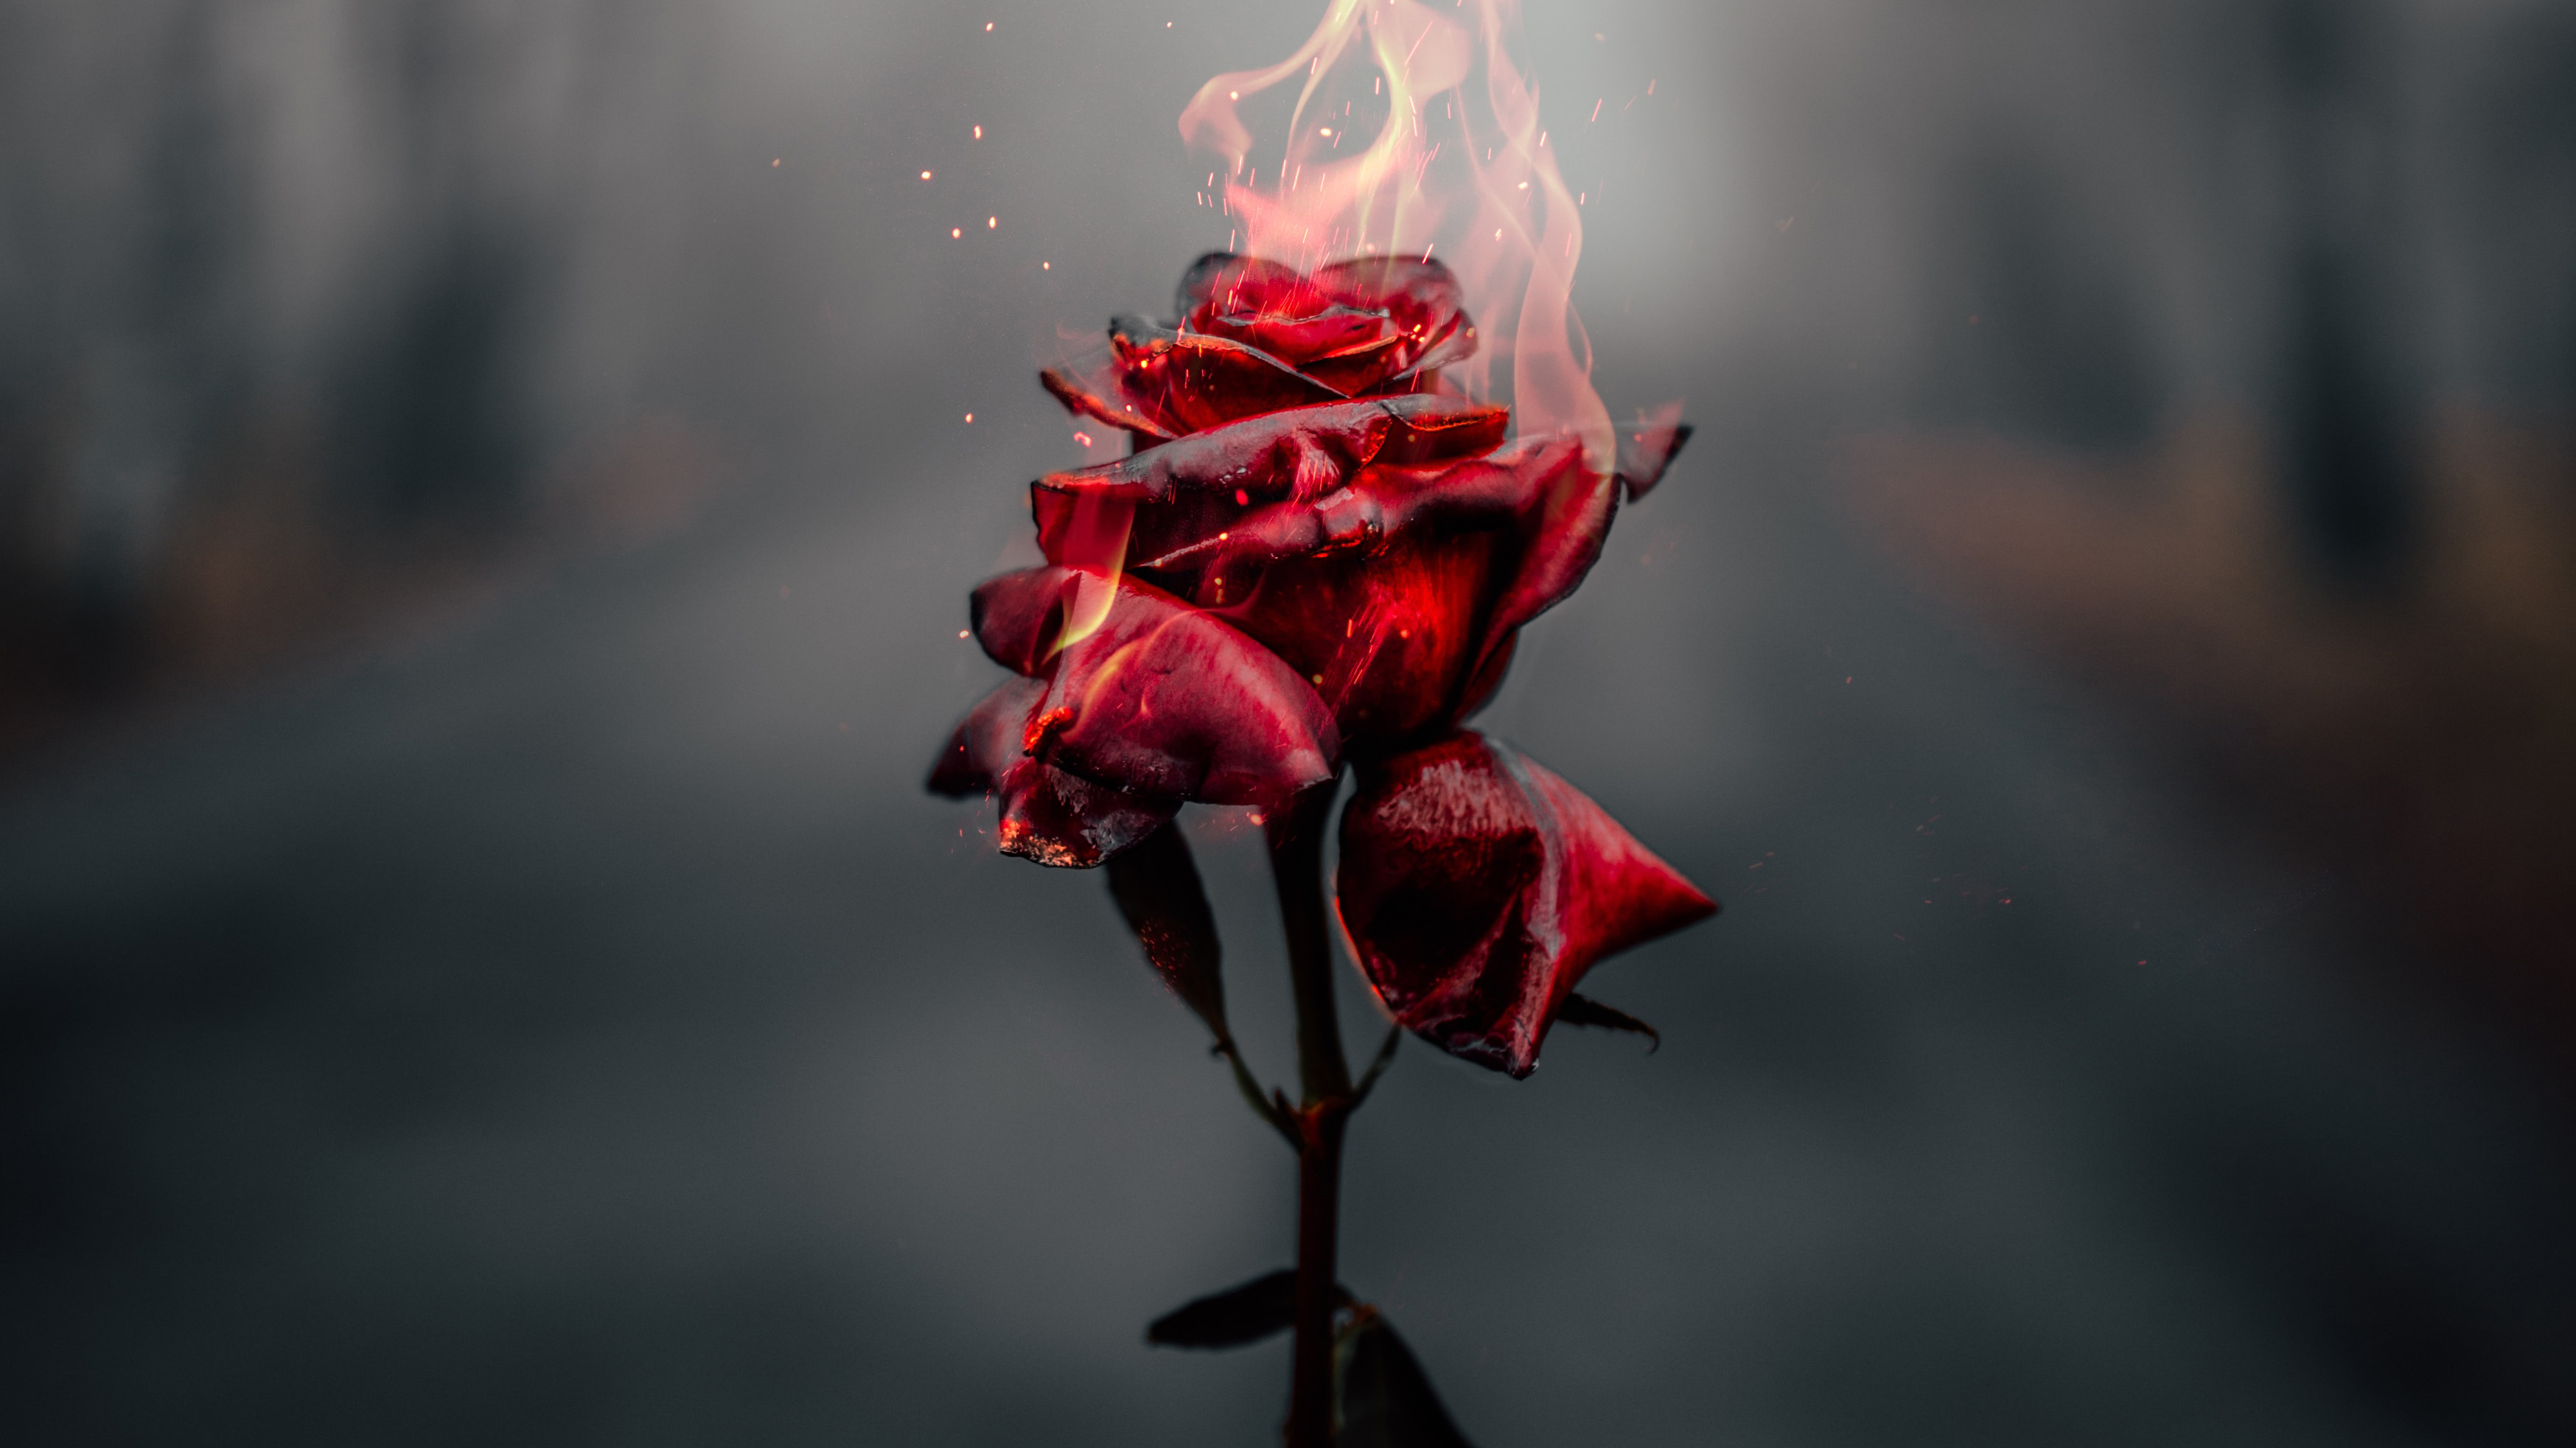 Burning Rose 4k Hd Photography 4k Wallpapers Images Backgrounds Photos And Pictures